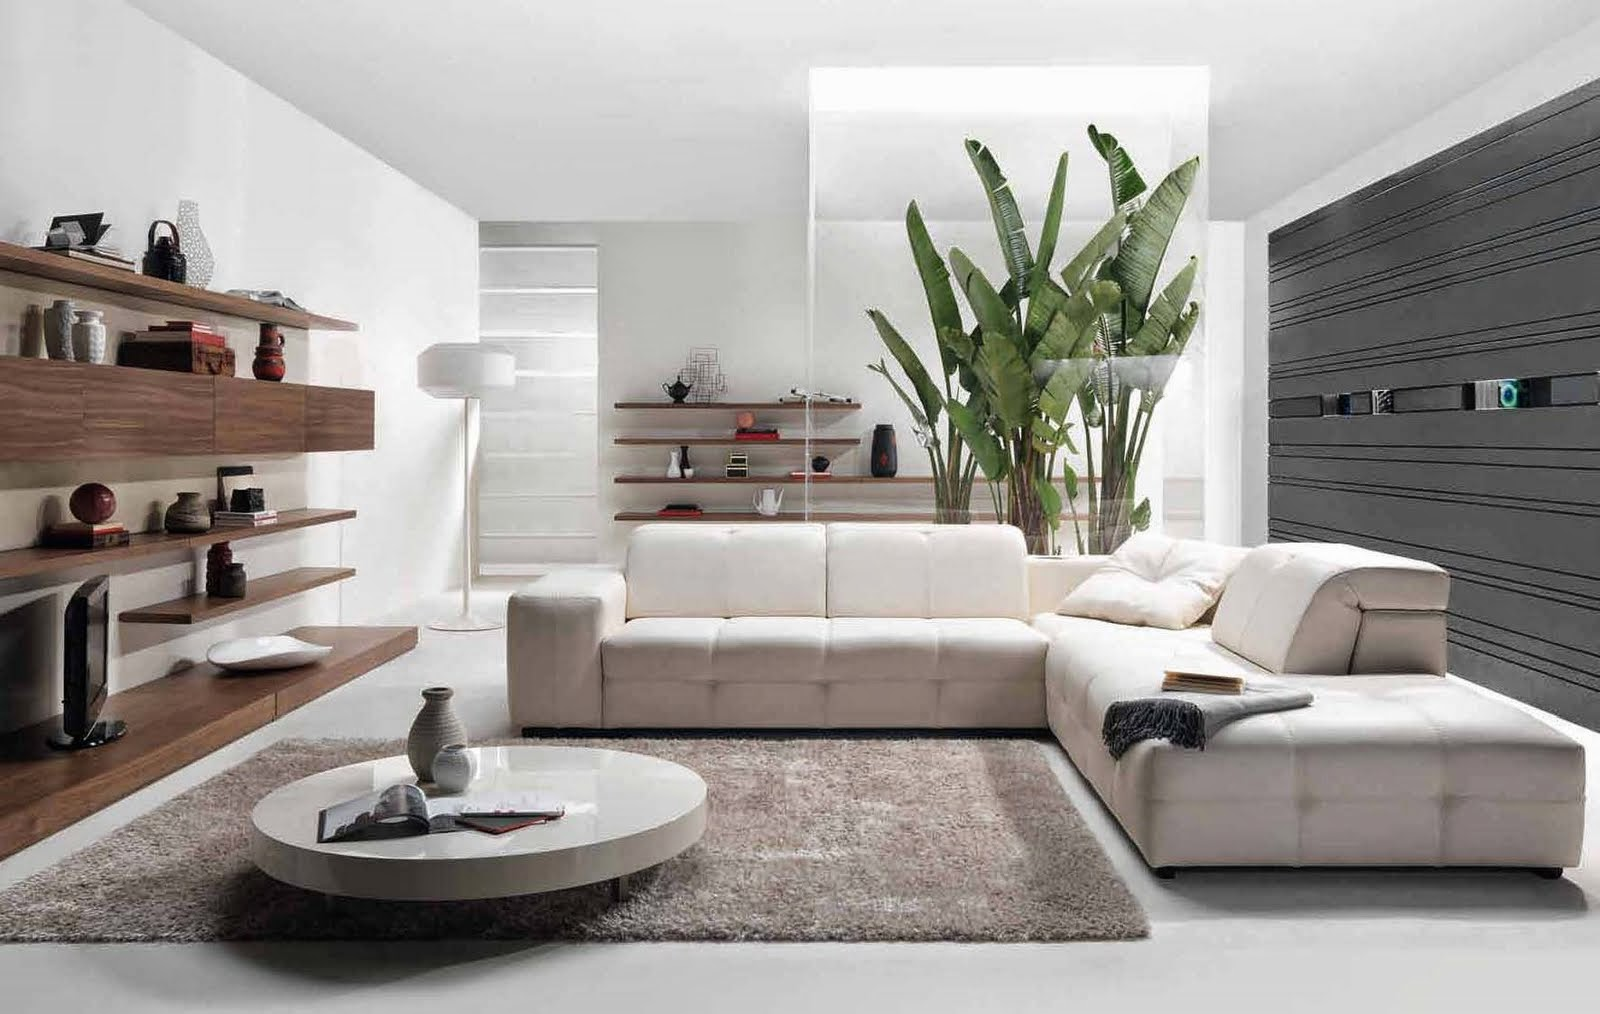 #15 Traditional Living Room Ideas